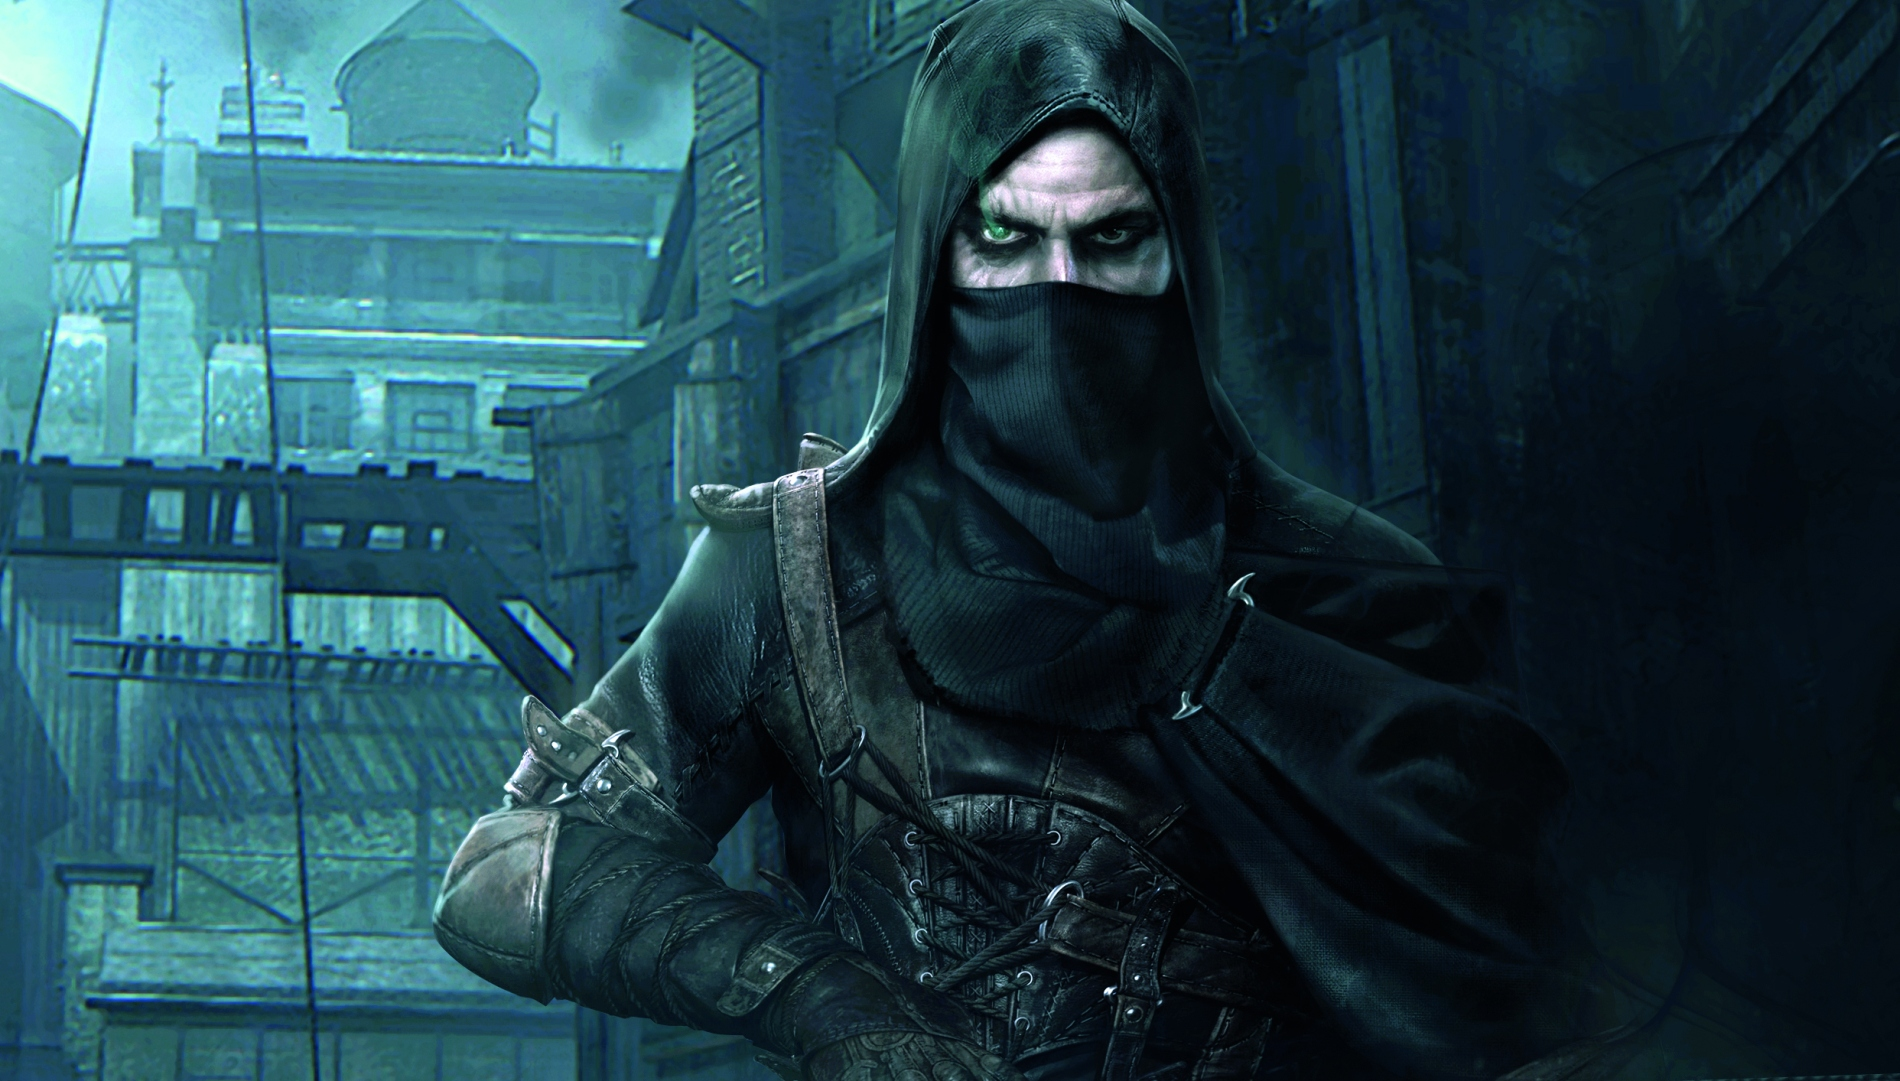 thief pc native 1080p versus xbox one upscaled 1080p can you spot